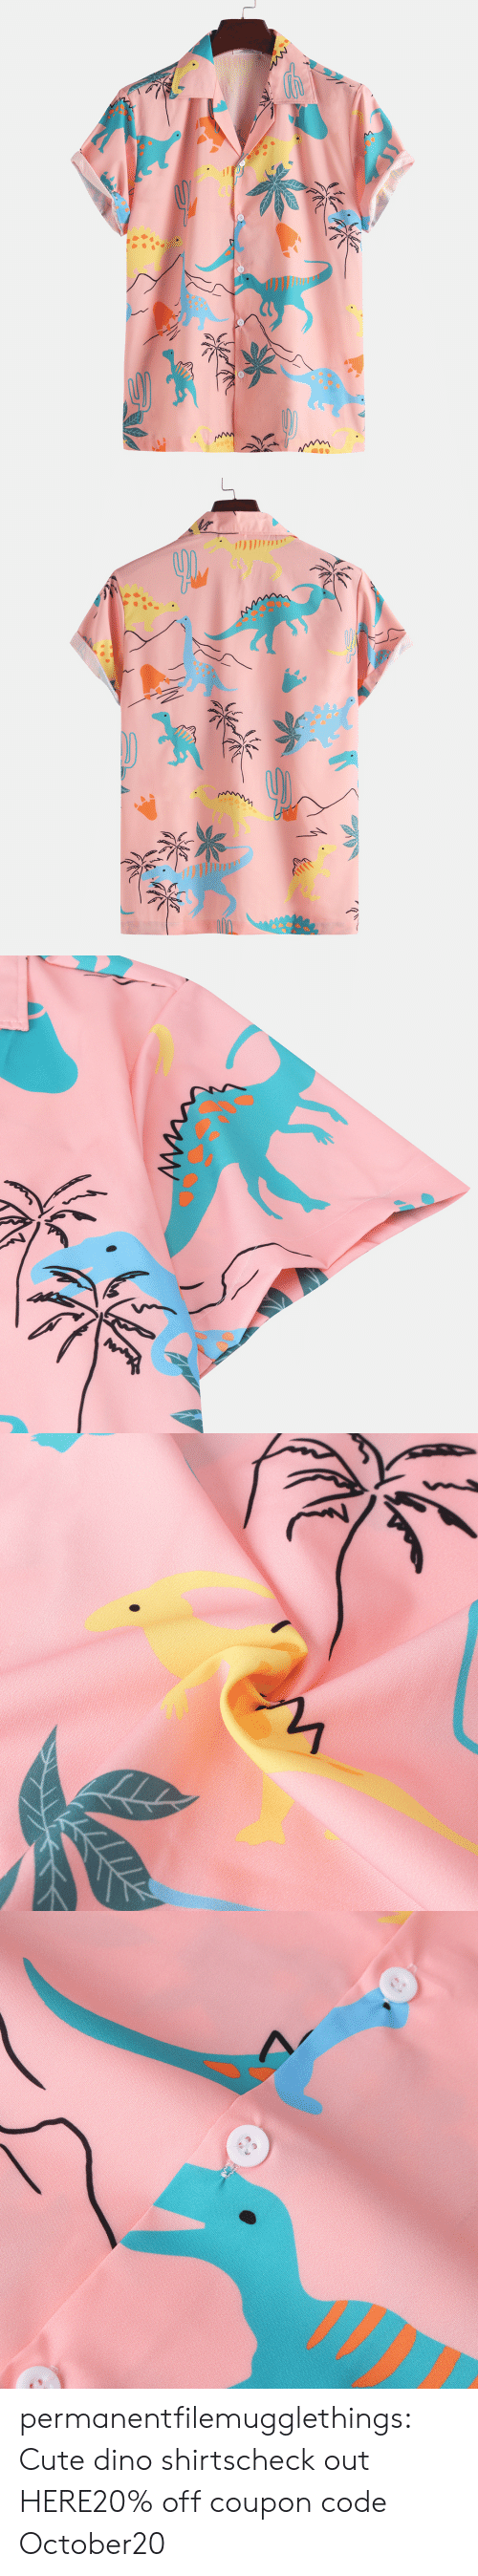 Cute, Tumblr, and Blog: * permanentfilemugglethings:  Cute dino shirtscheck out HERE20% off coupon code:October20